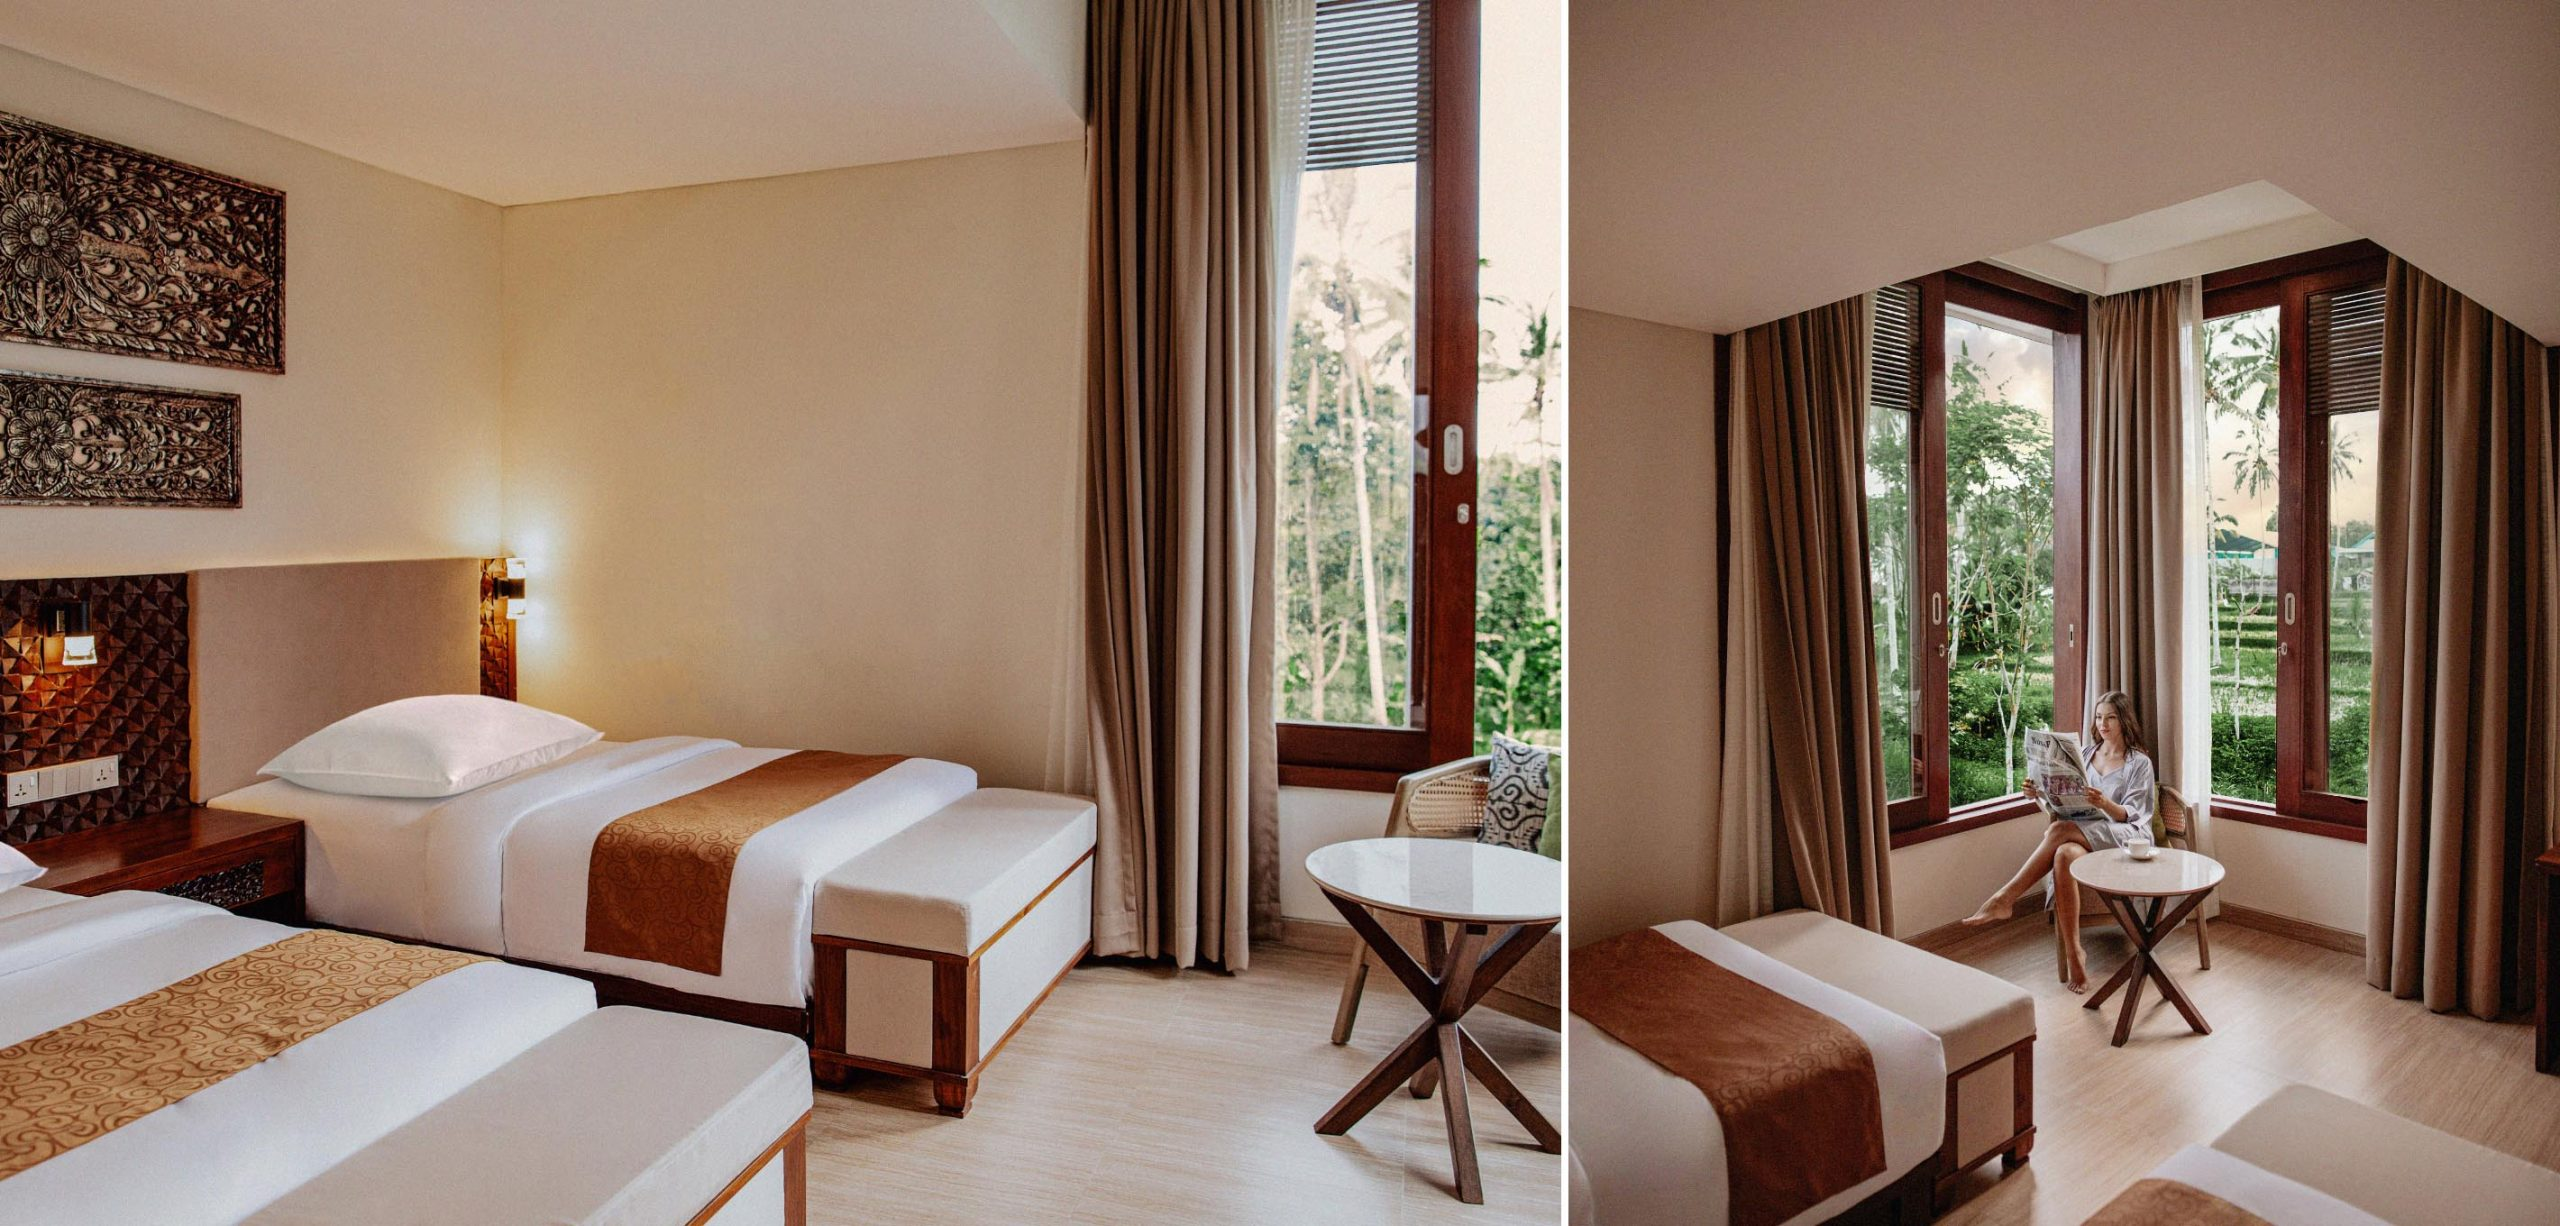 Twin Bedroom with views of Paddy Fields